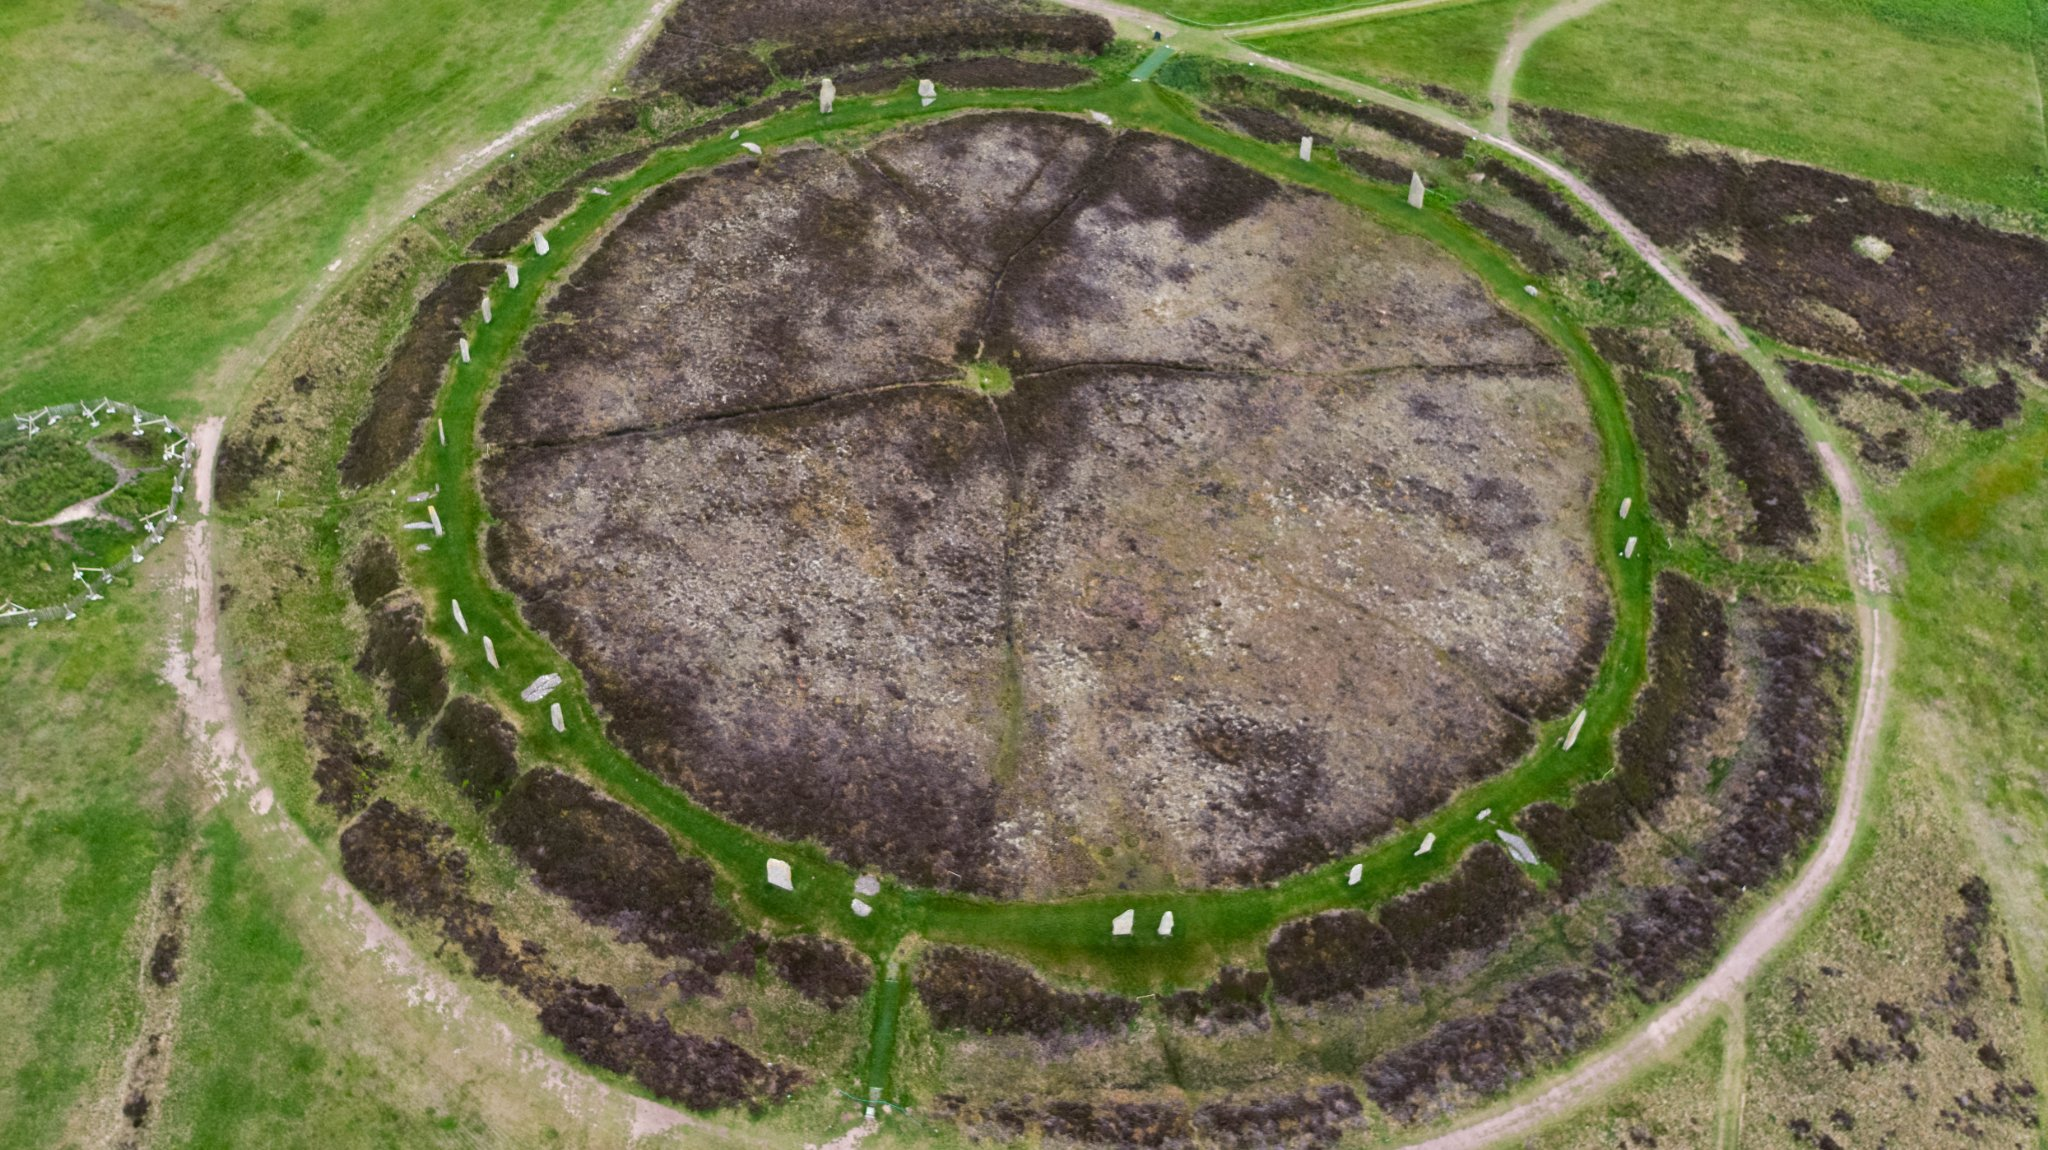 The Ring of Brodgar, Orkney - image by Nick McCaffrey